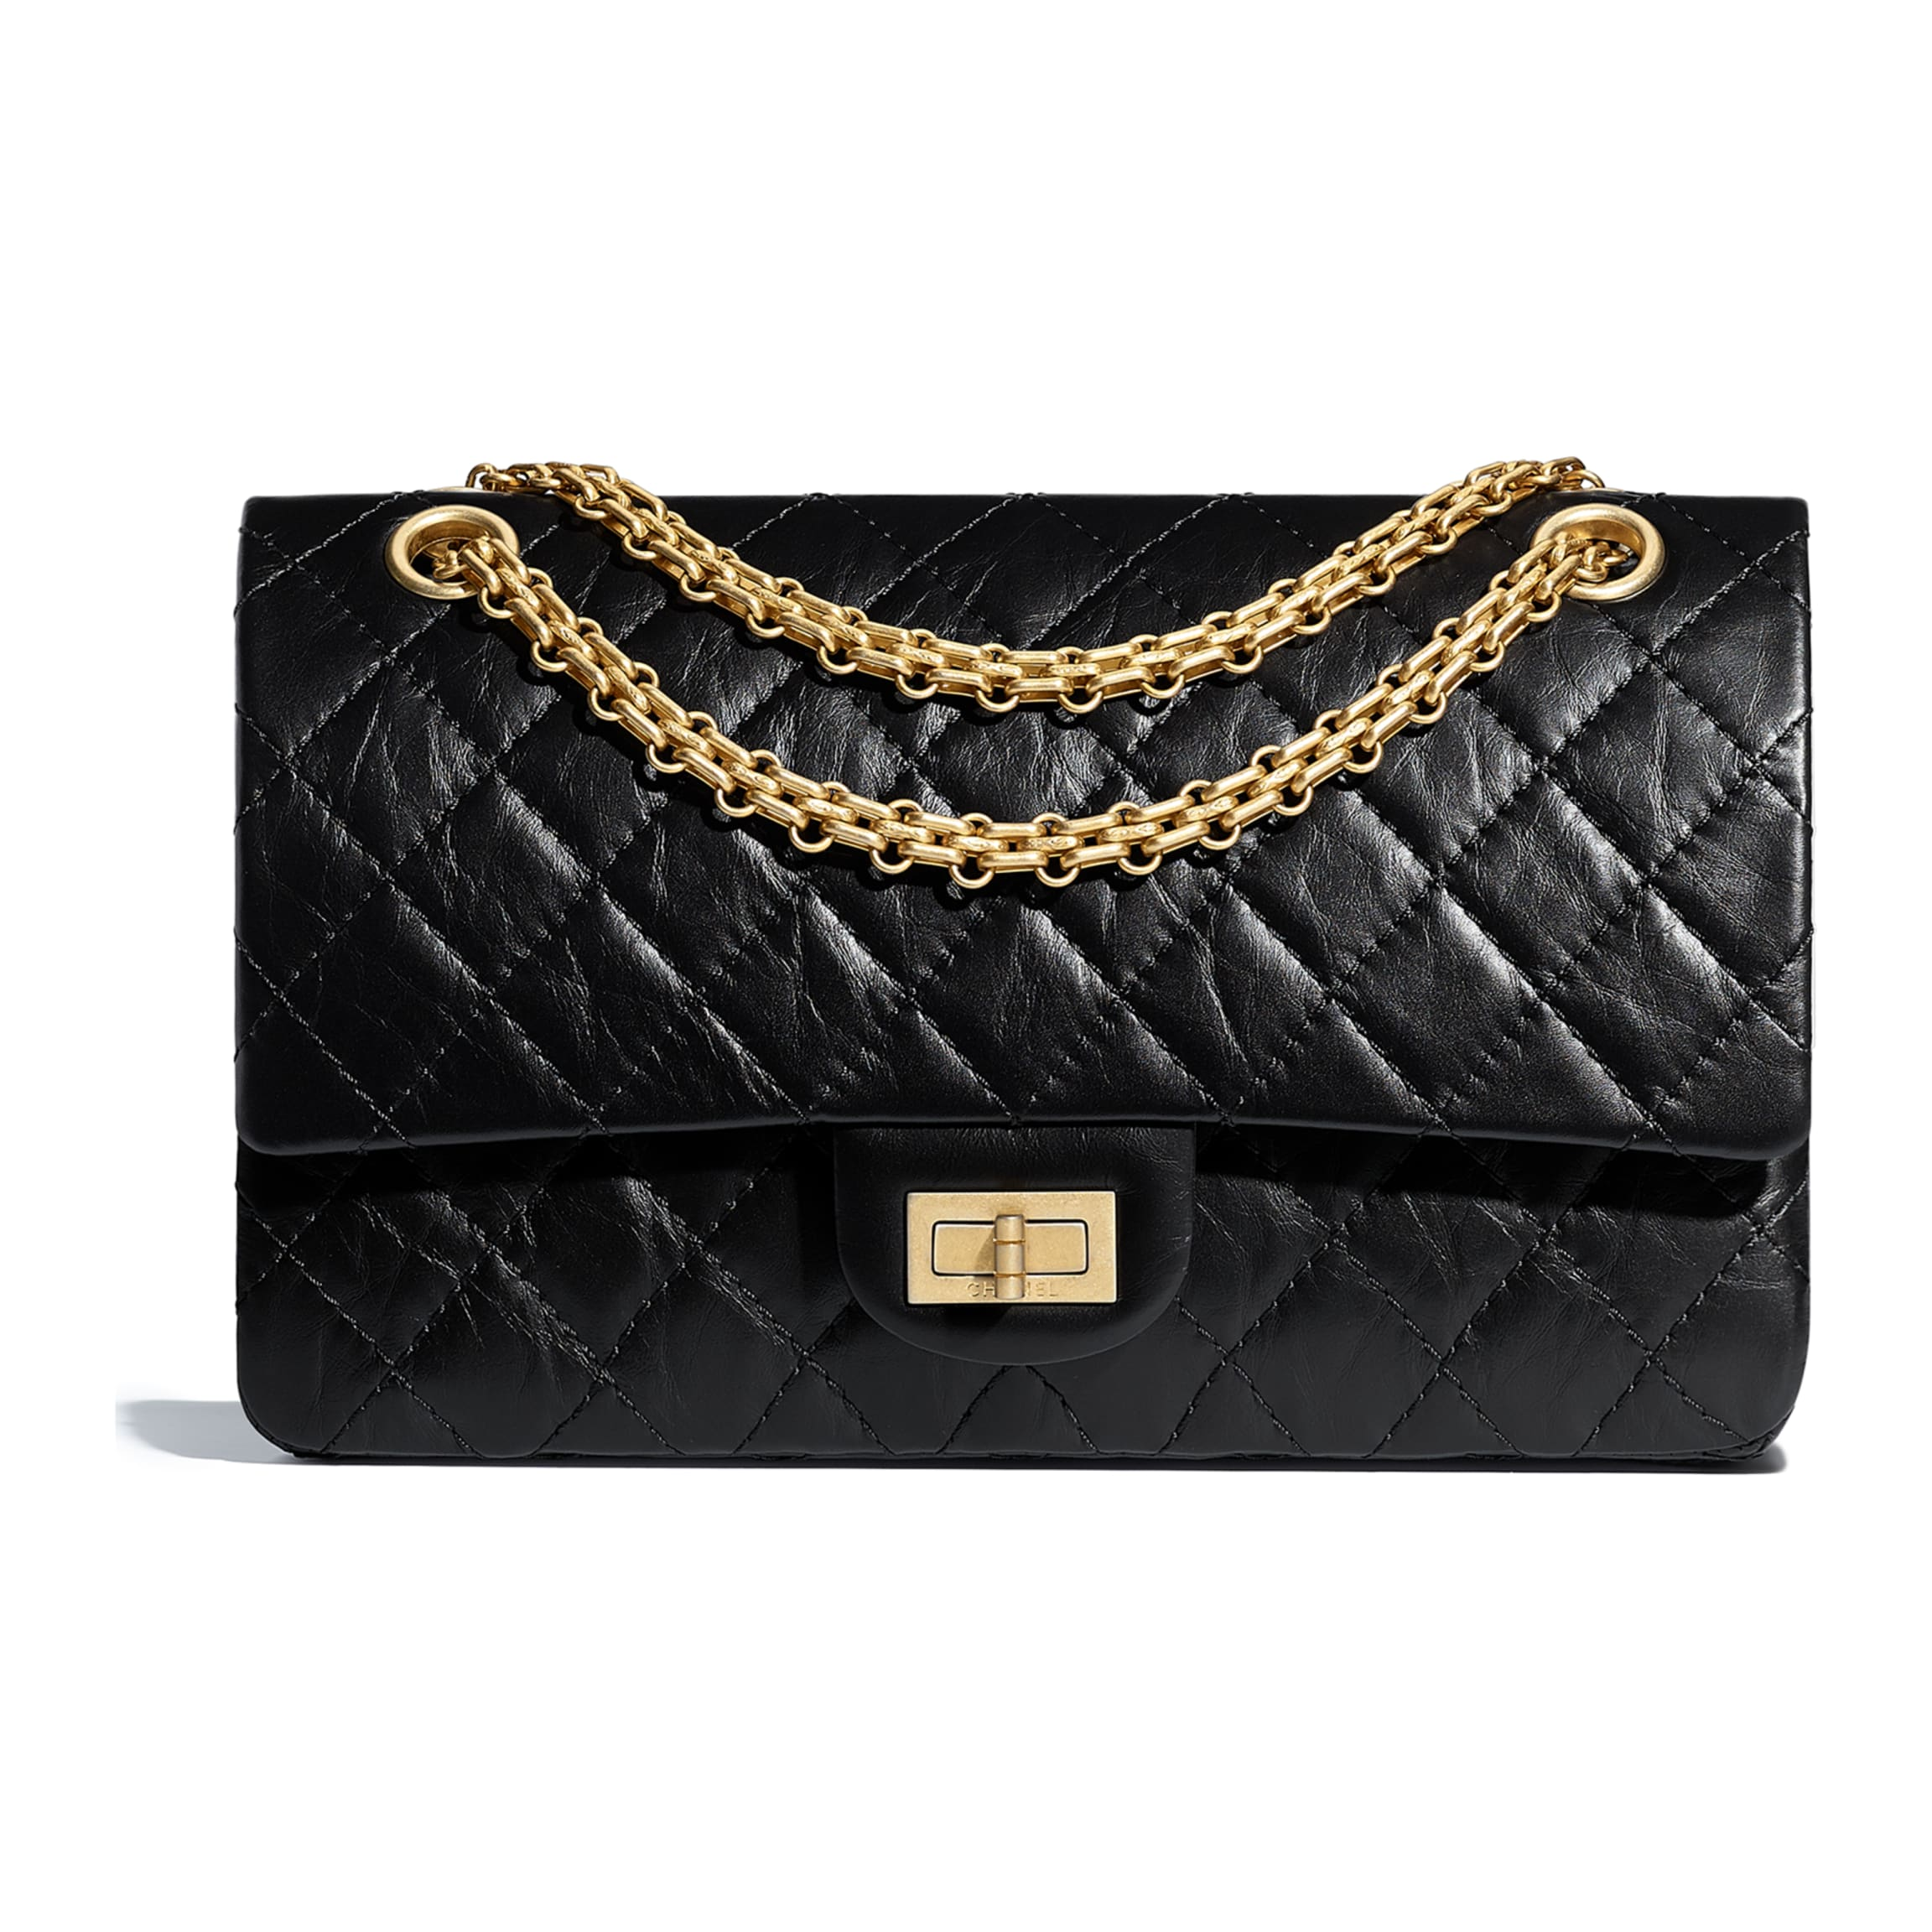 How Much Are Chanel Purses on the Resale Market? Retail vs Resale Prices Chanel 2.55 Reissue